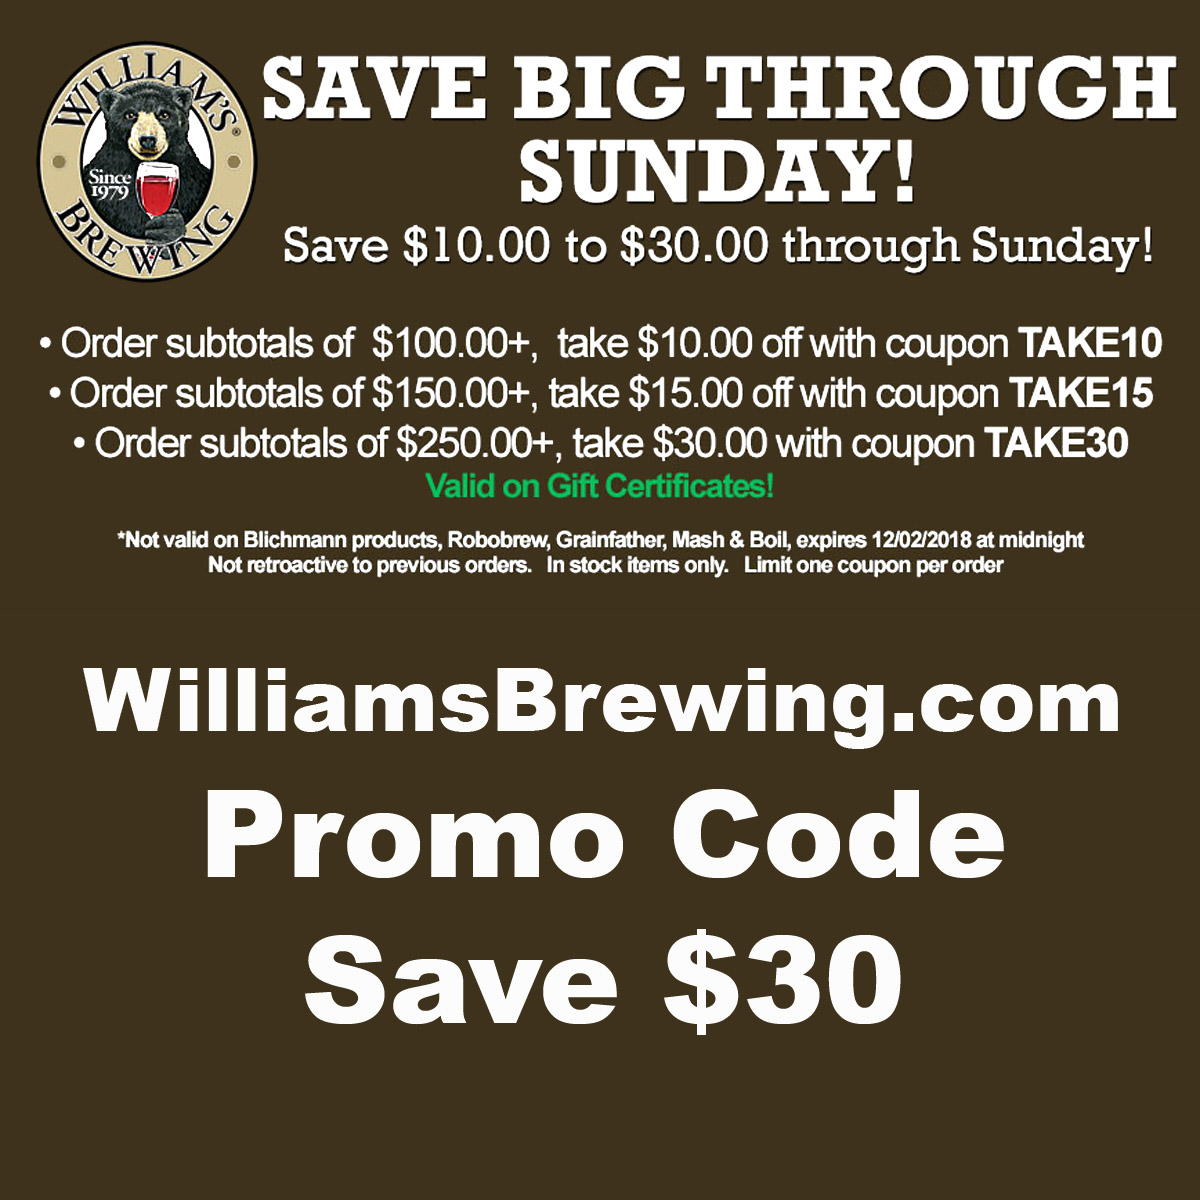 Home Wine Making Coupon Codes for Save Up To An Extra $30 At Williams Brewing With This WilliamsBrewing.com Promo Code Coupon Code